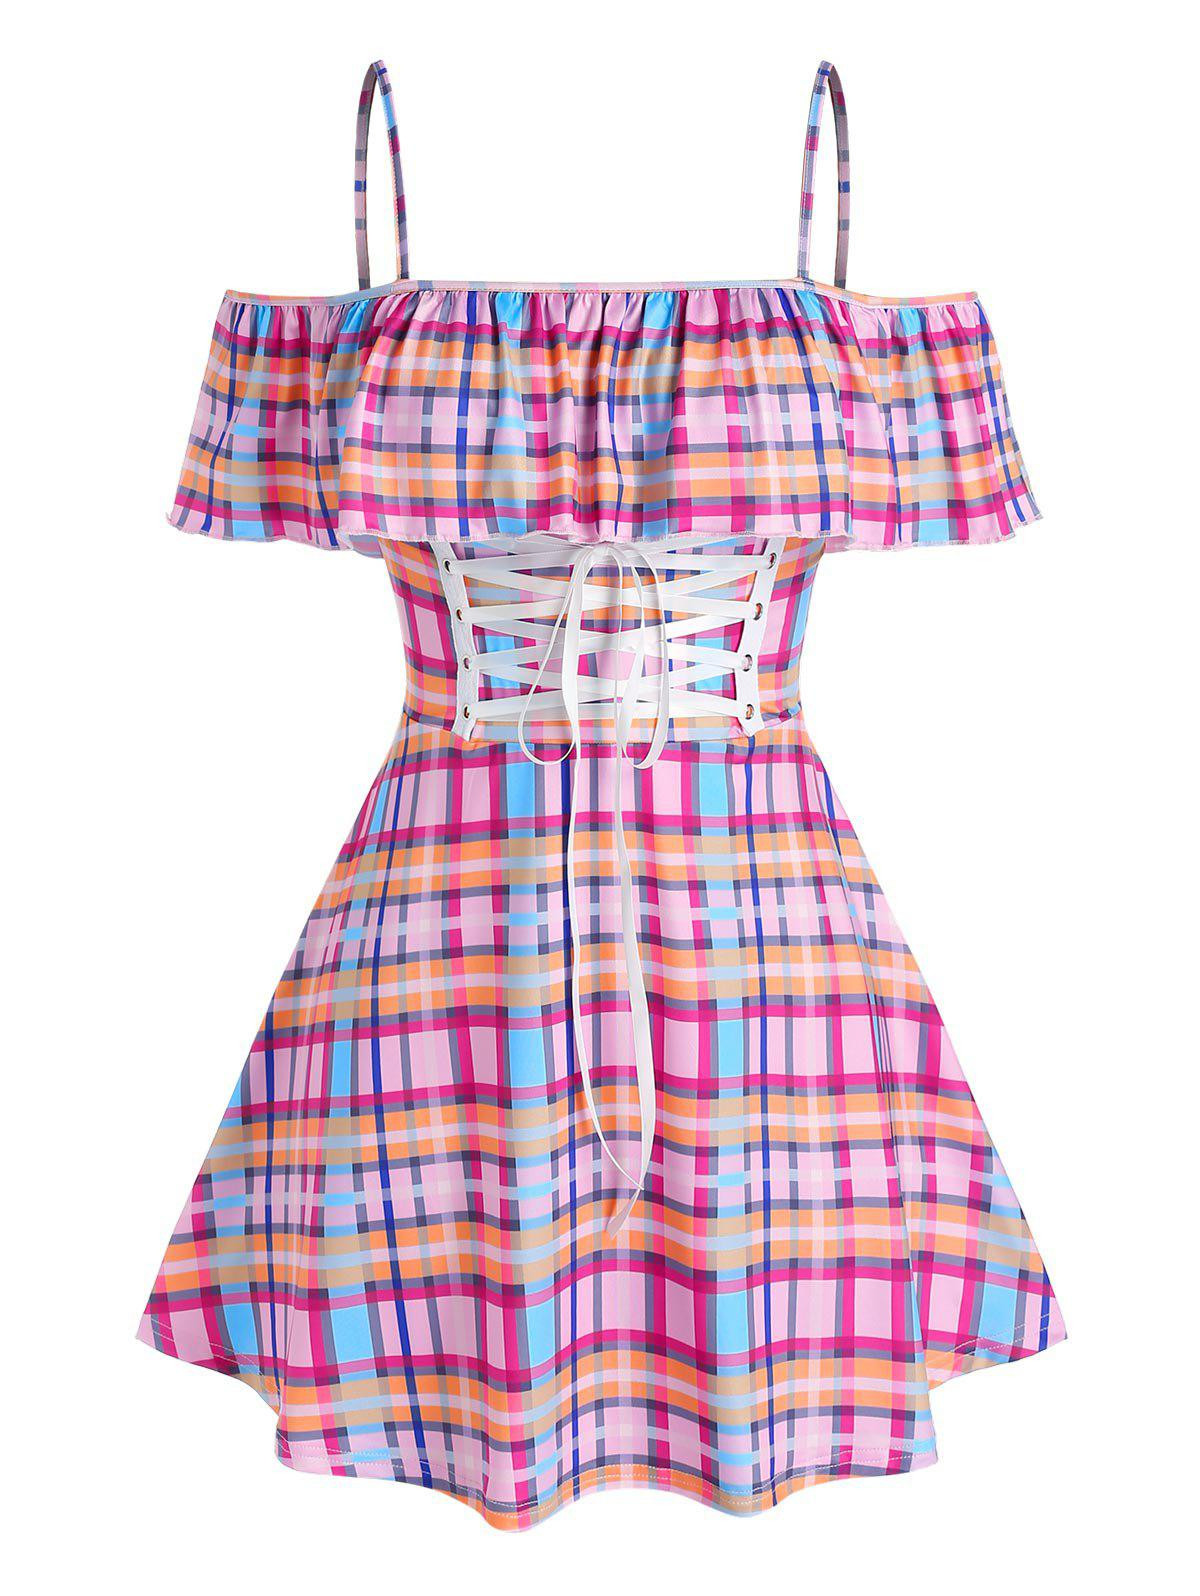 Plus Size Cold Shoulder Ruffled Lace Up Plaid Dress - multicolor 5X